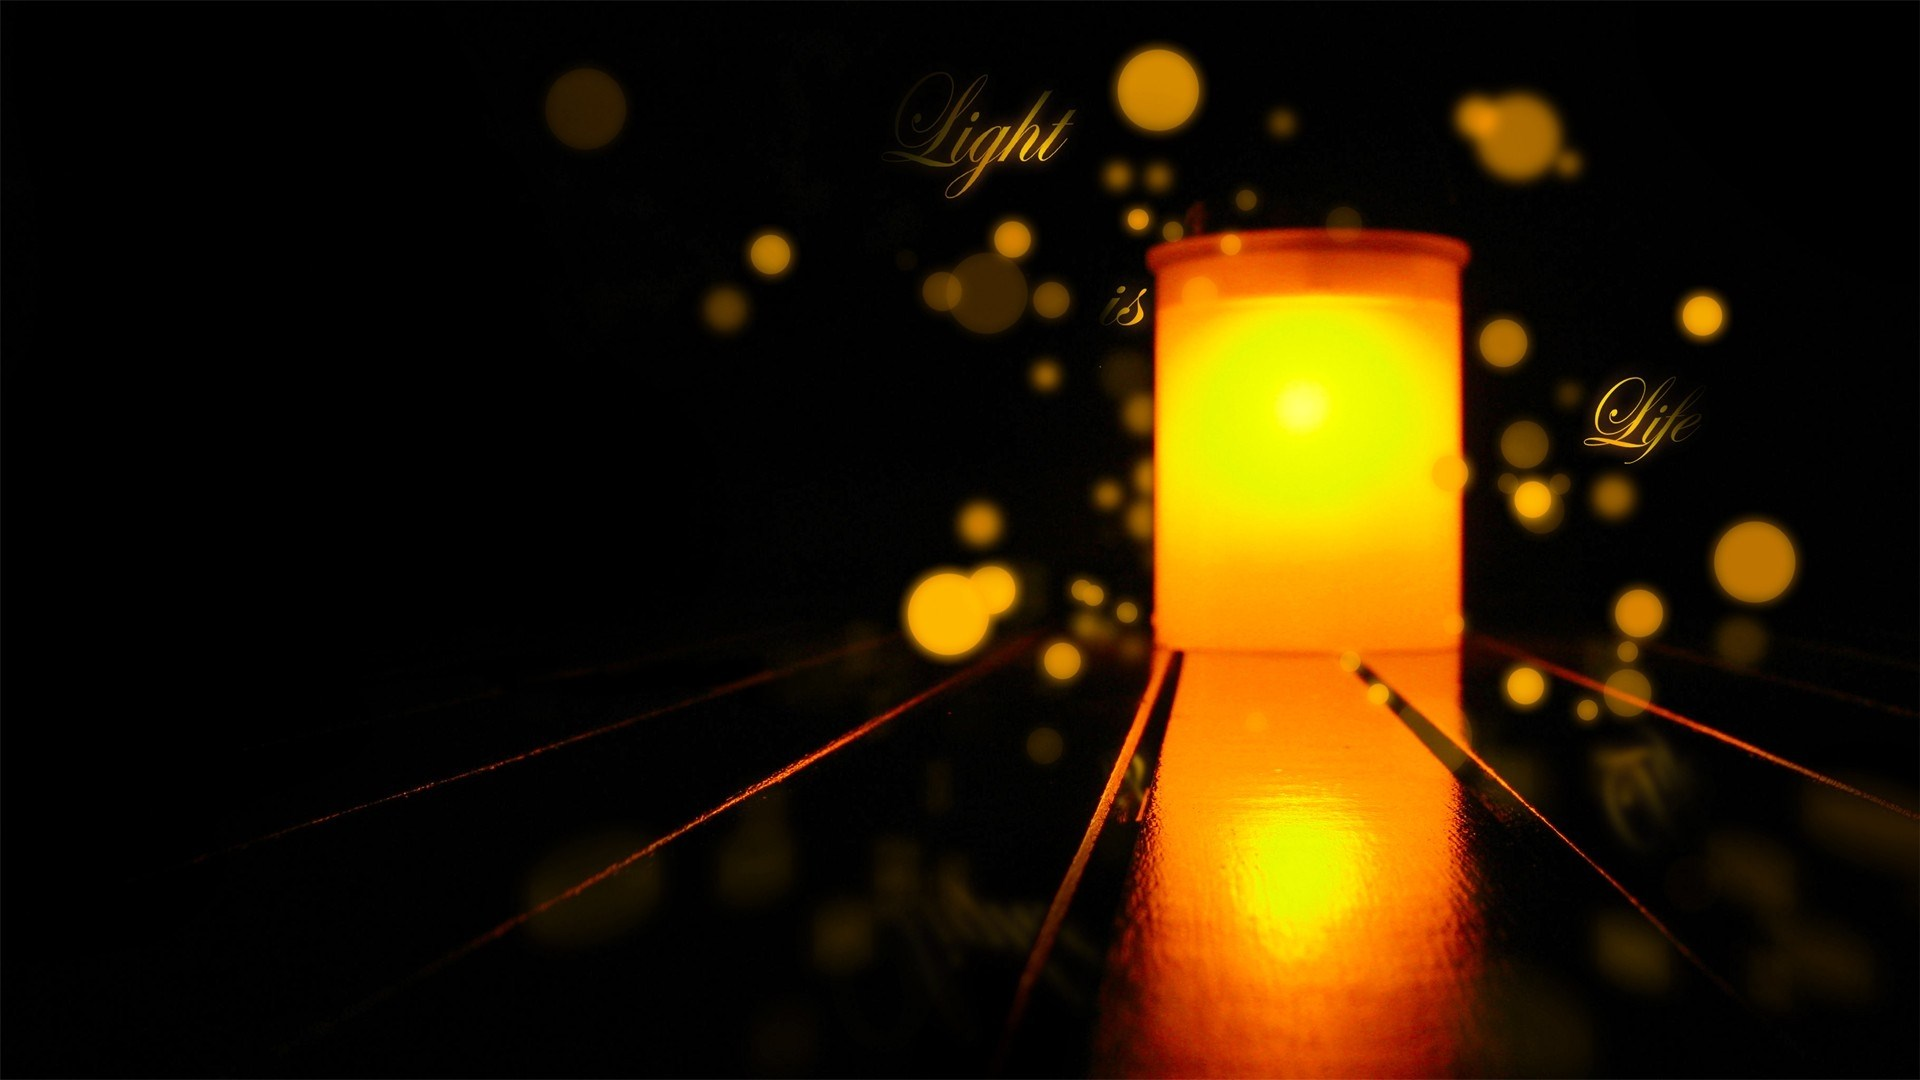 Light Wallpapers Backgrounds Hd 20